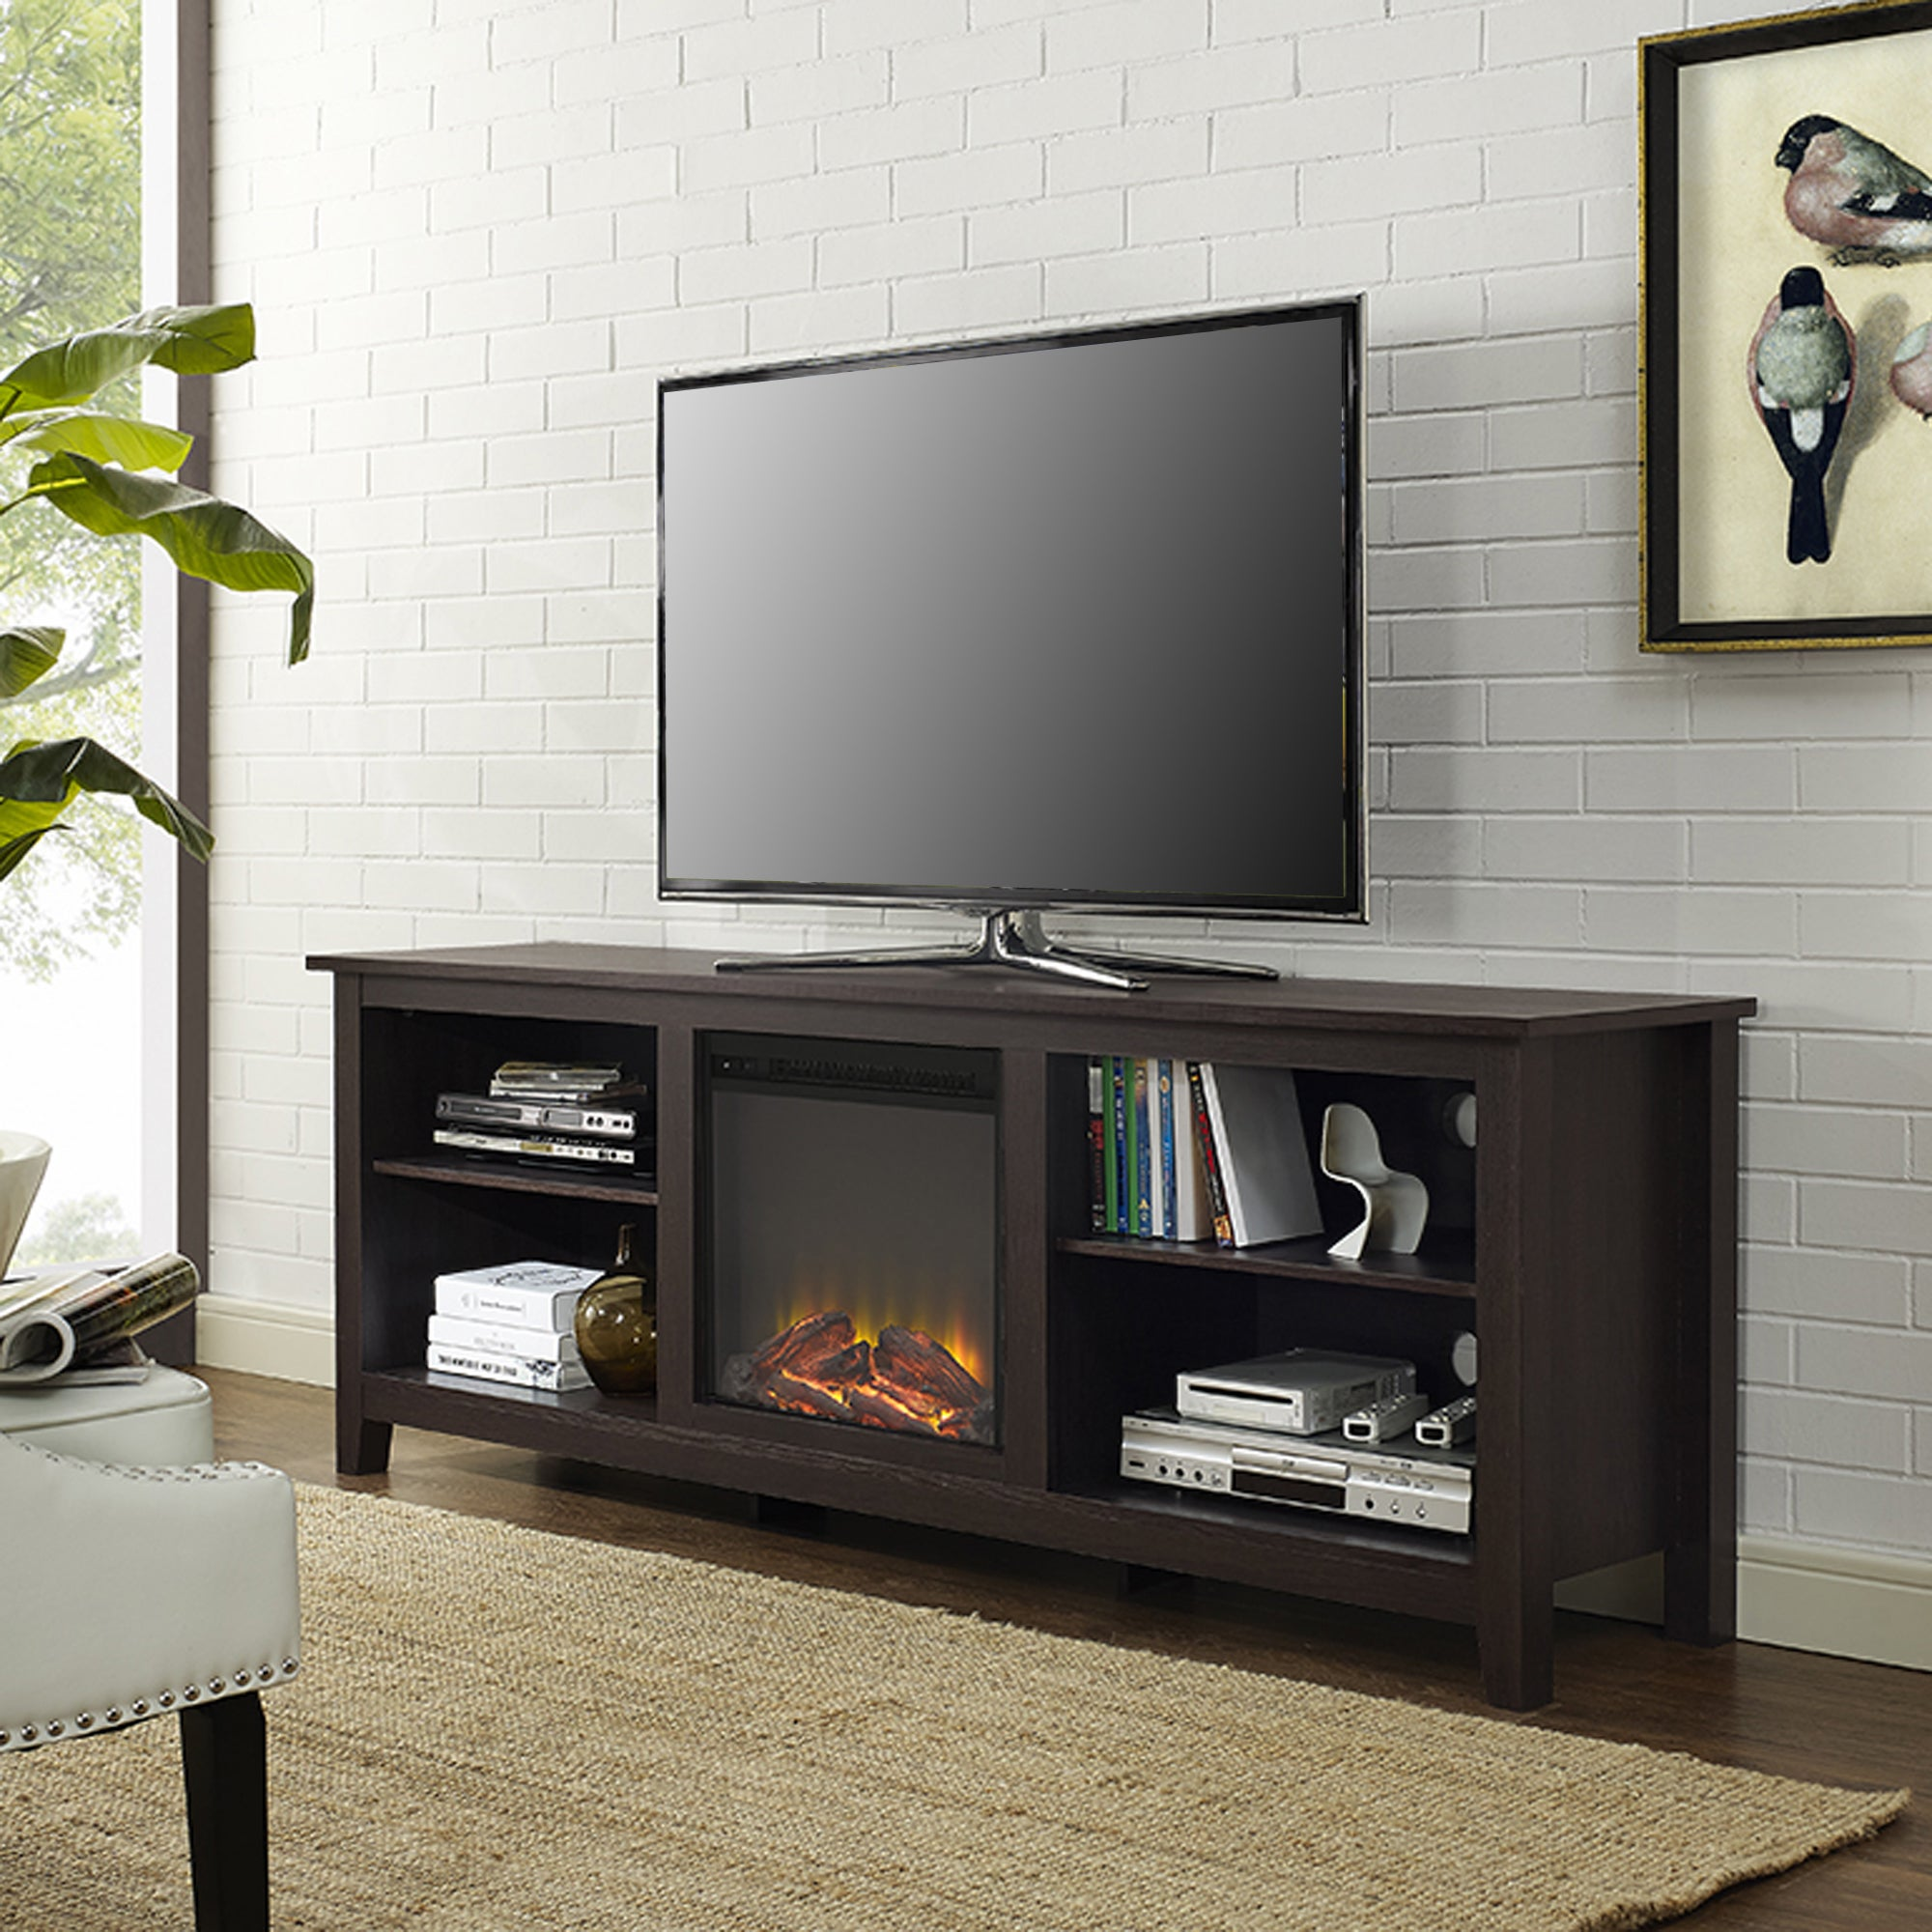 70 Fireplace Tv Stand Console Espresso X 16 24h Free Shipping Today 10613286